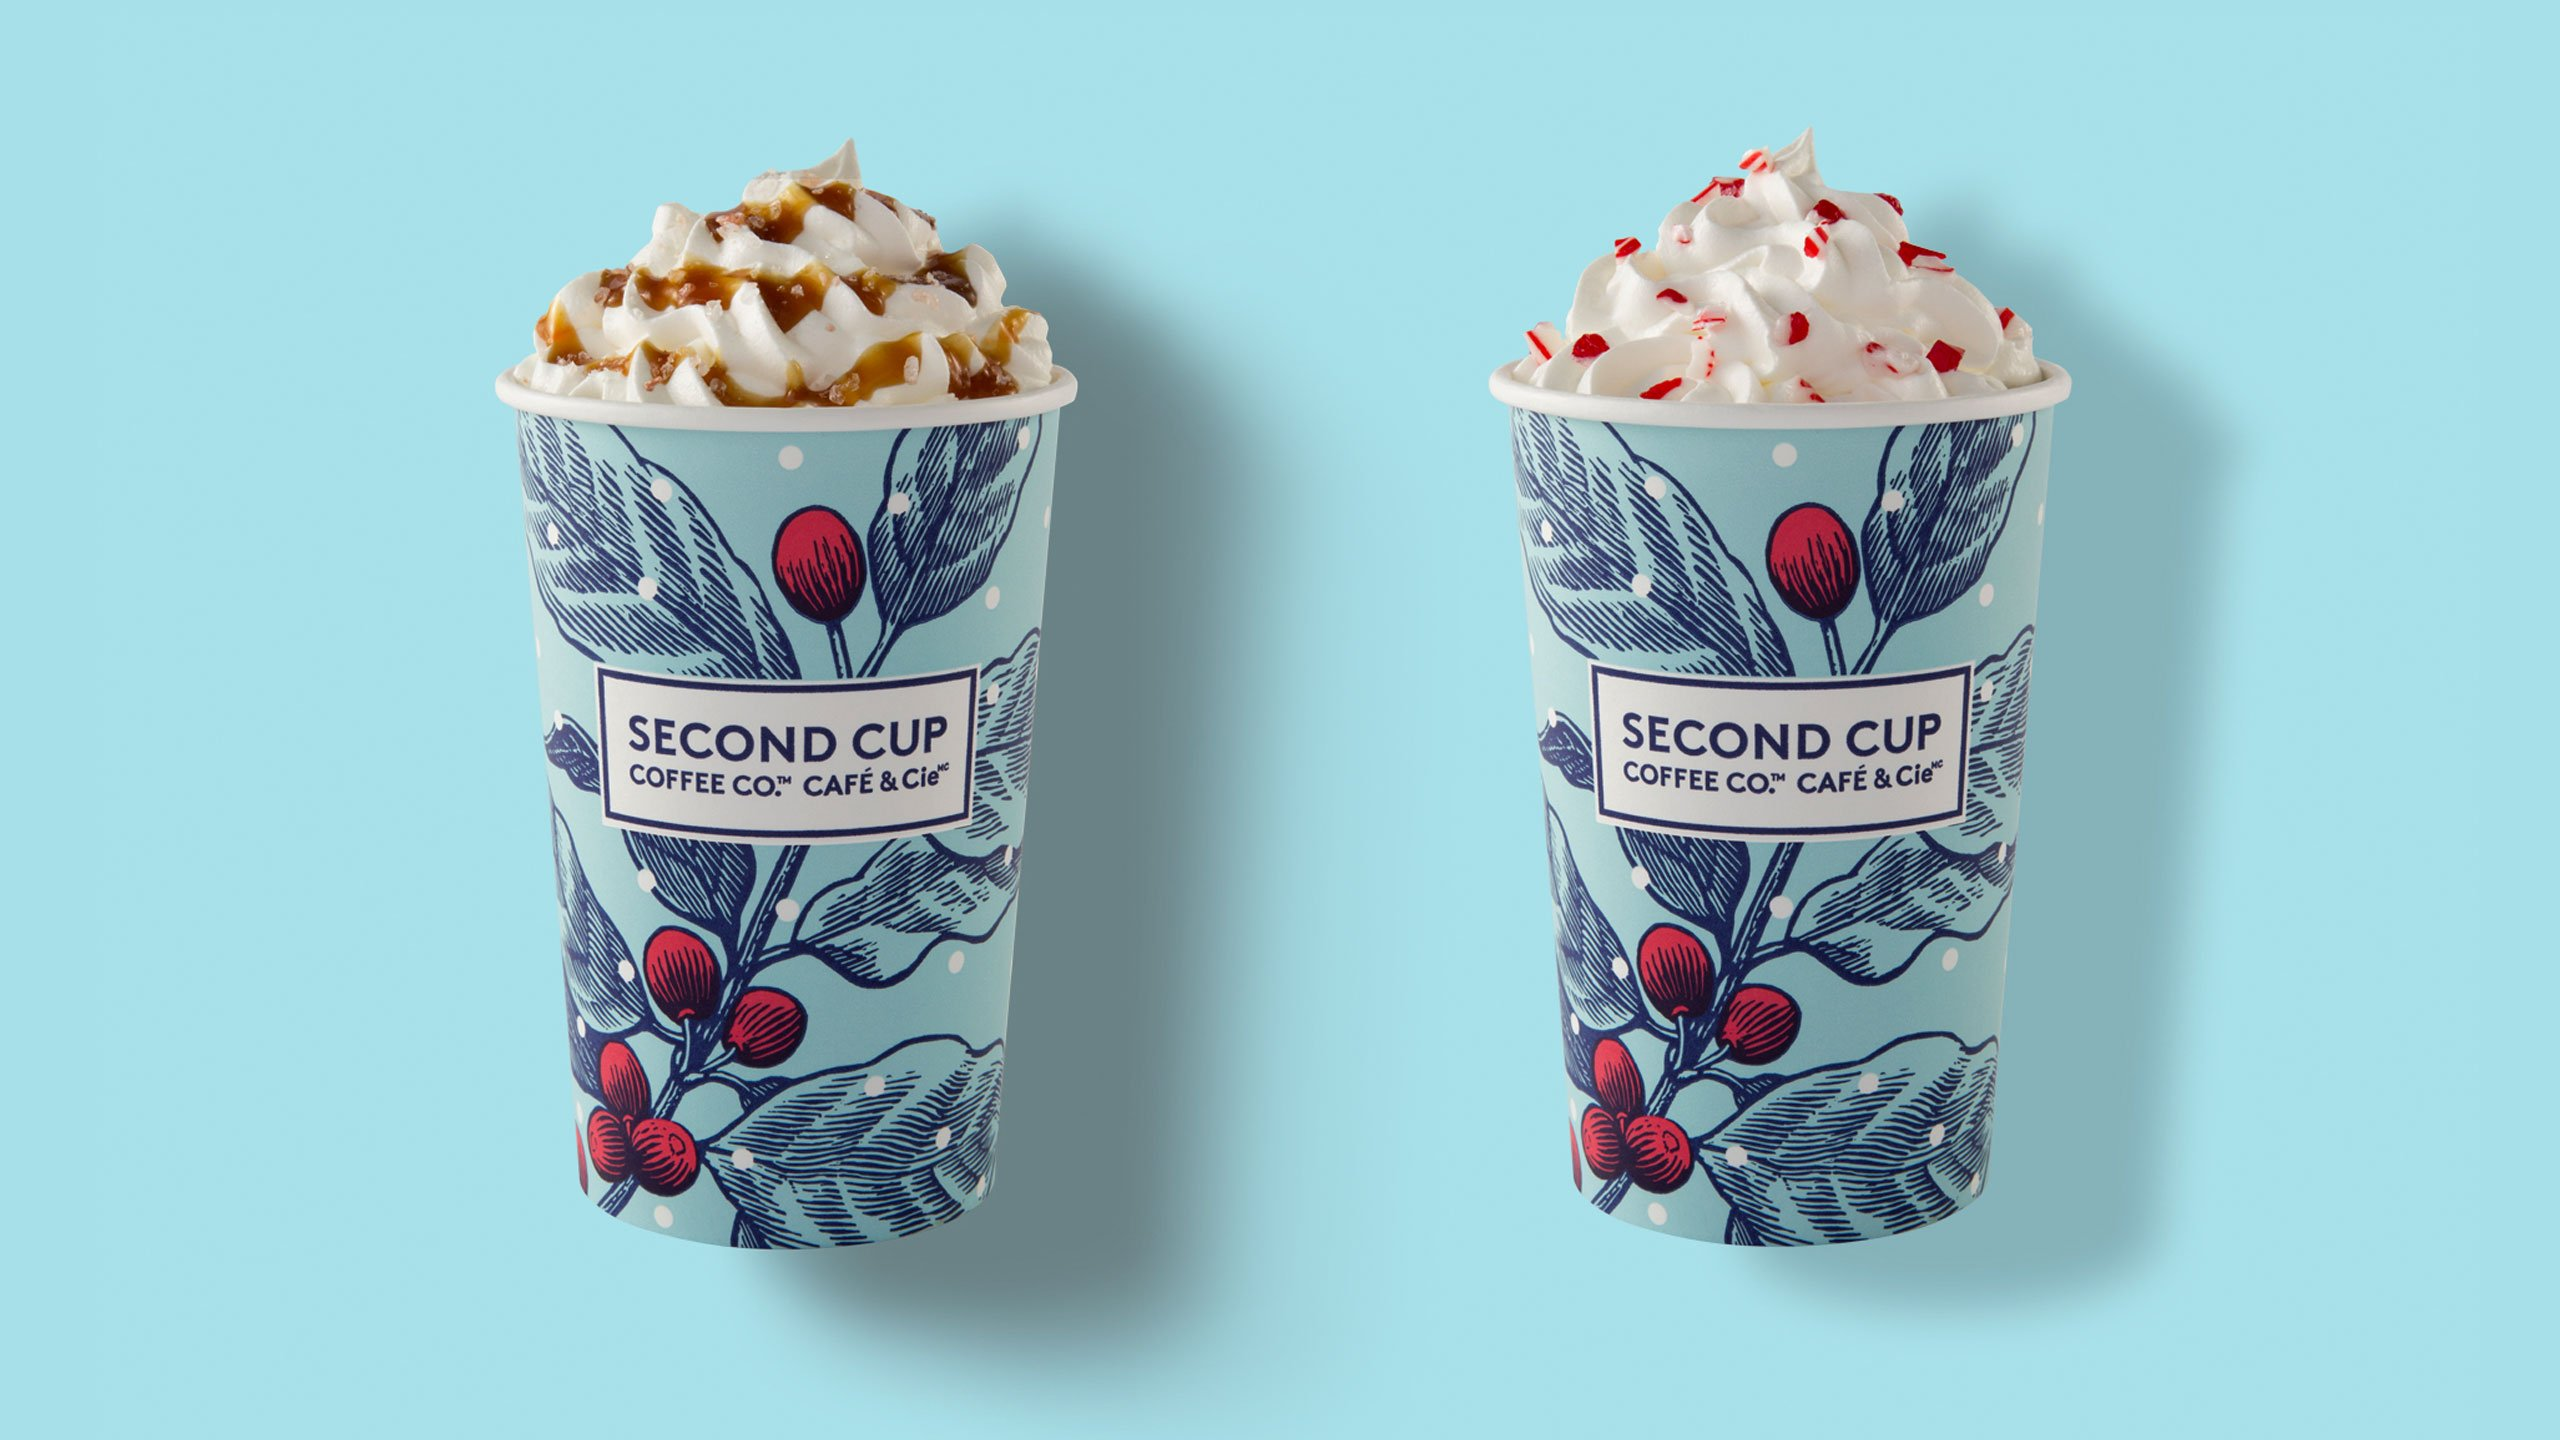 retail campaign design and packaging